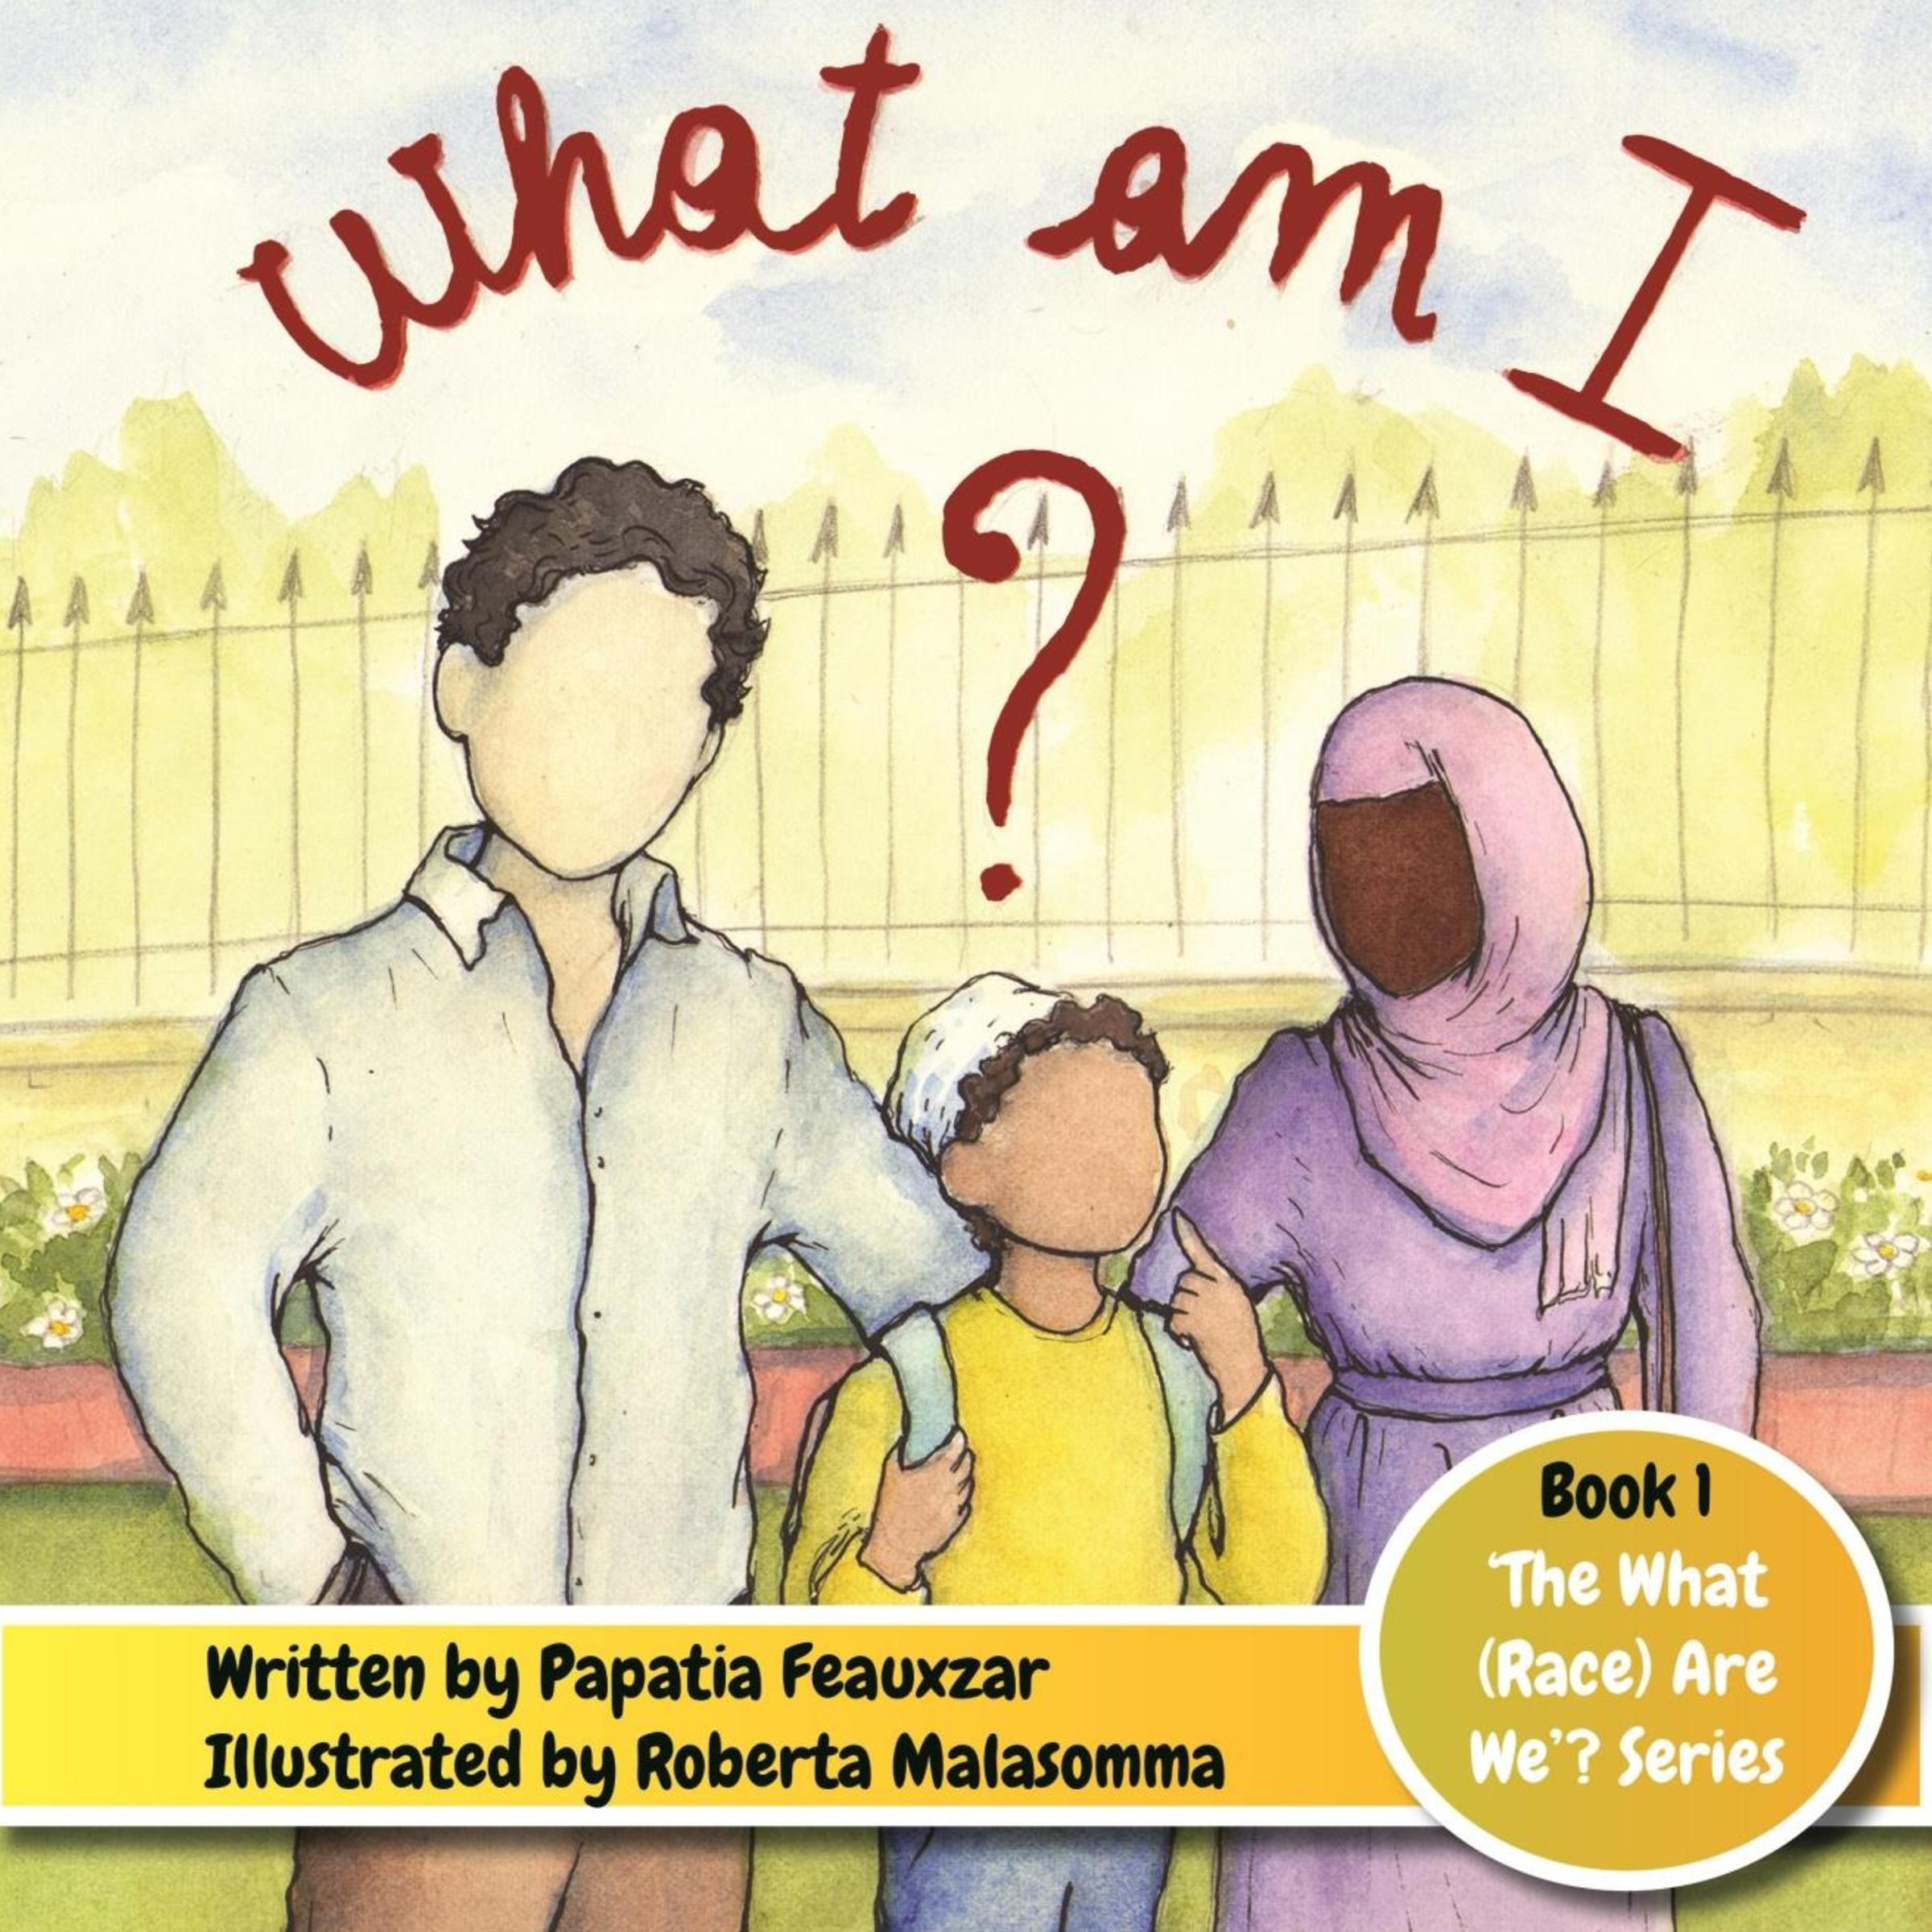 What Am I eBook cover amazon 020417.jpg